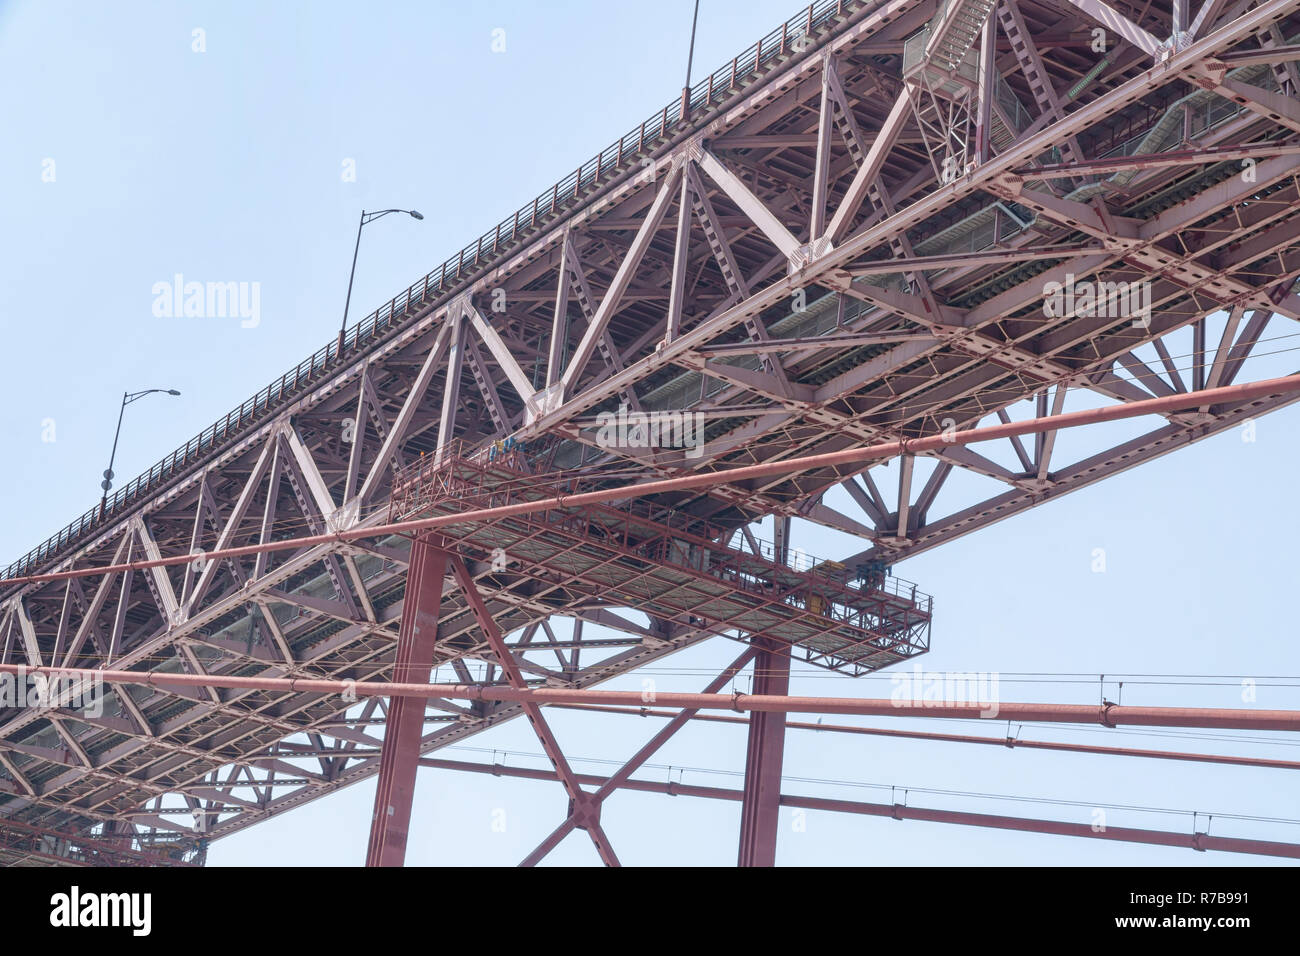 Bottom view of the structure of suspension bridge. Famous 25th of April Bridge over Tagus River in Lisbon, Portugal. - Stock Image